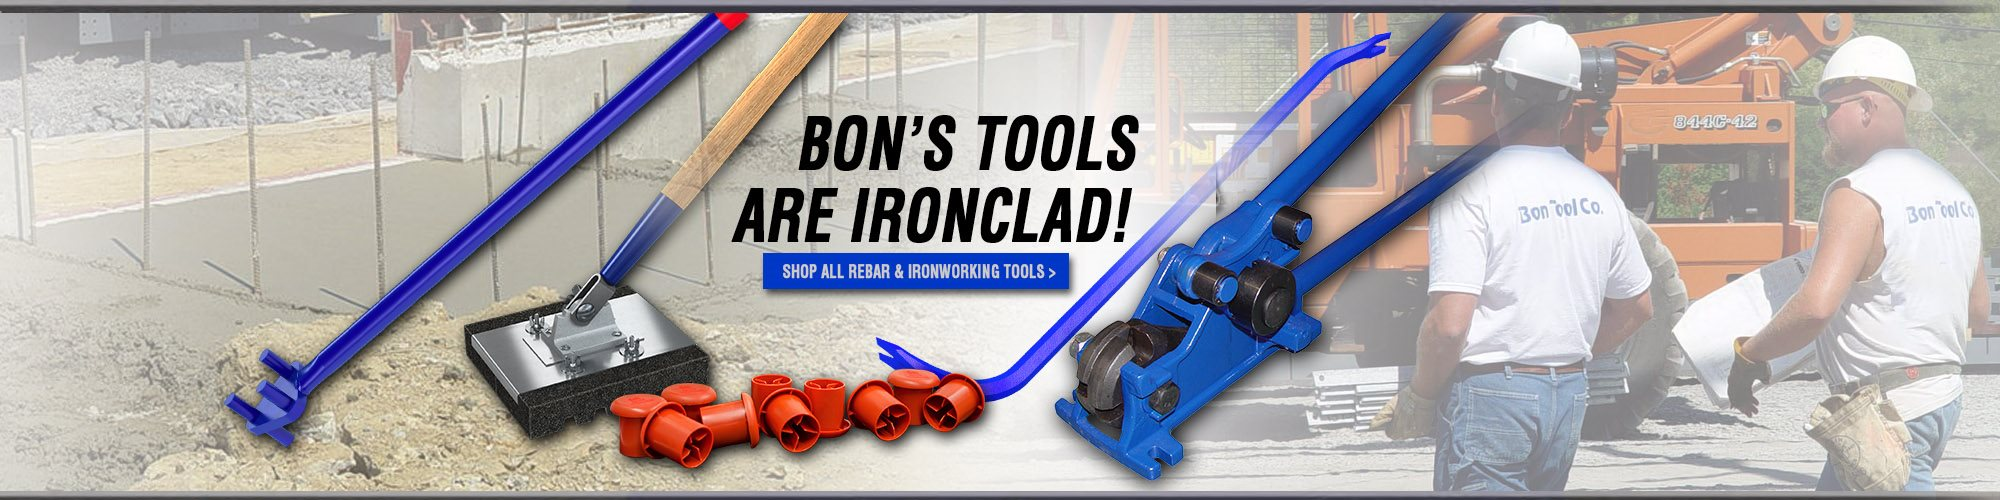 Bon Rebar and Ironworking Tools